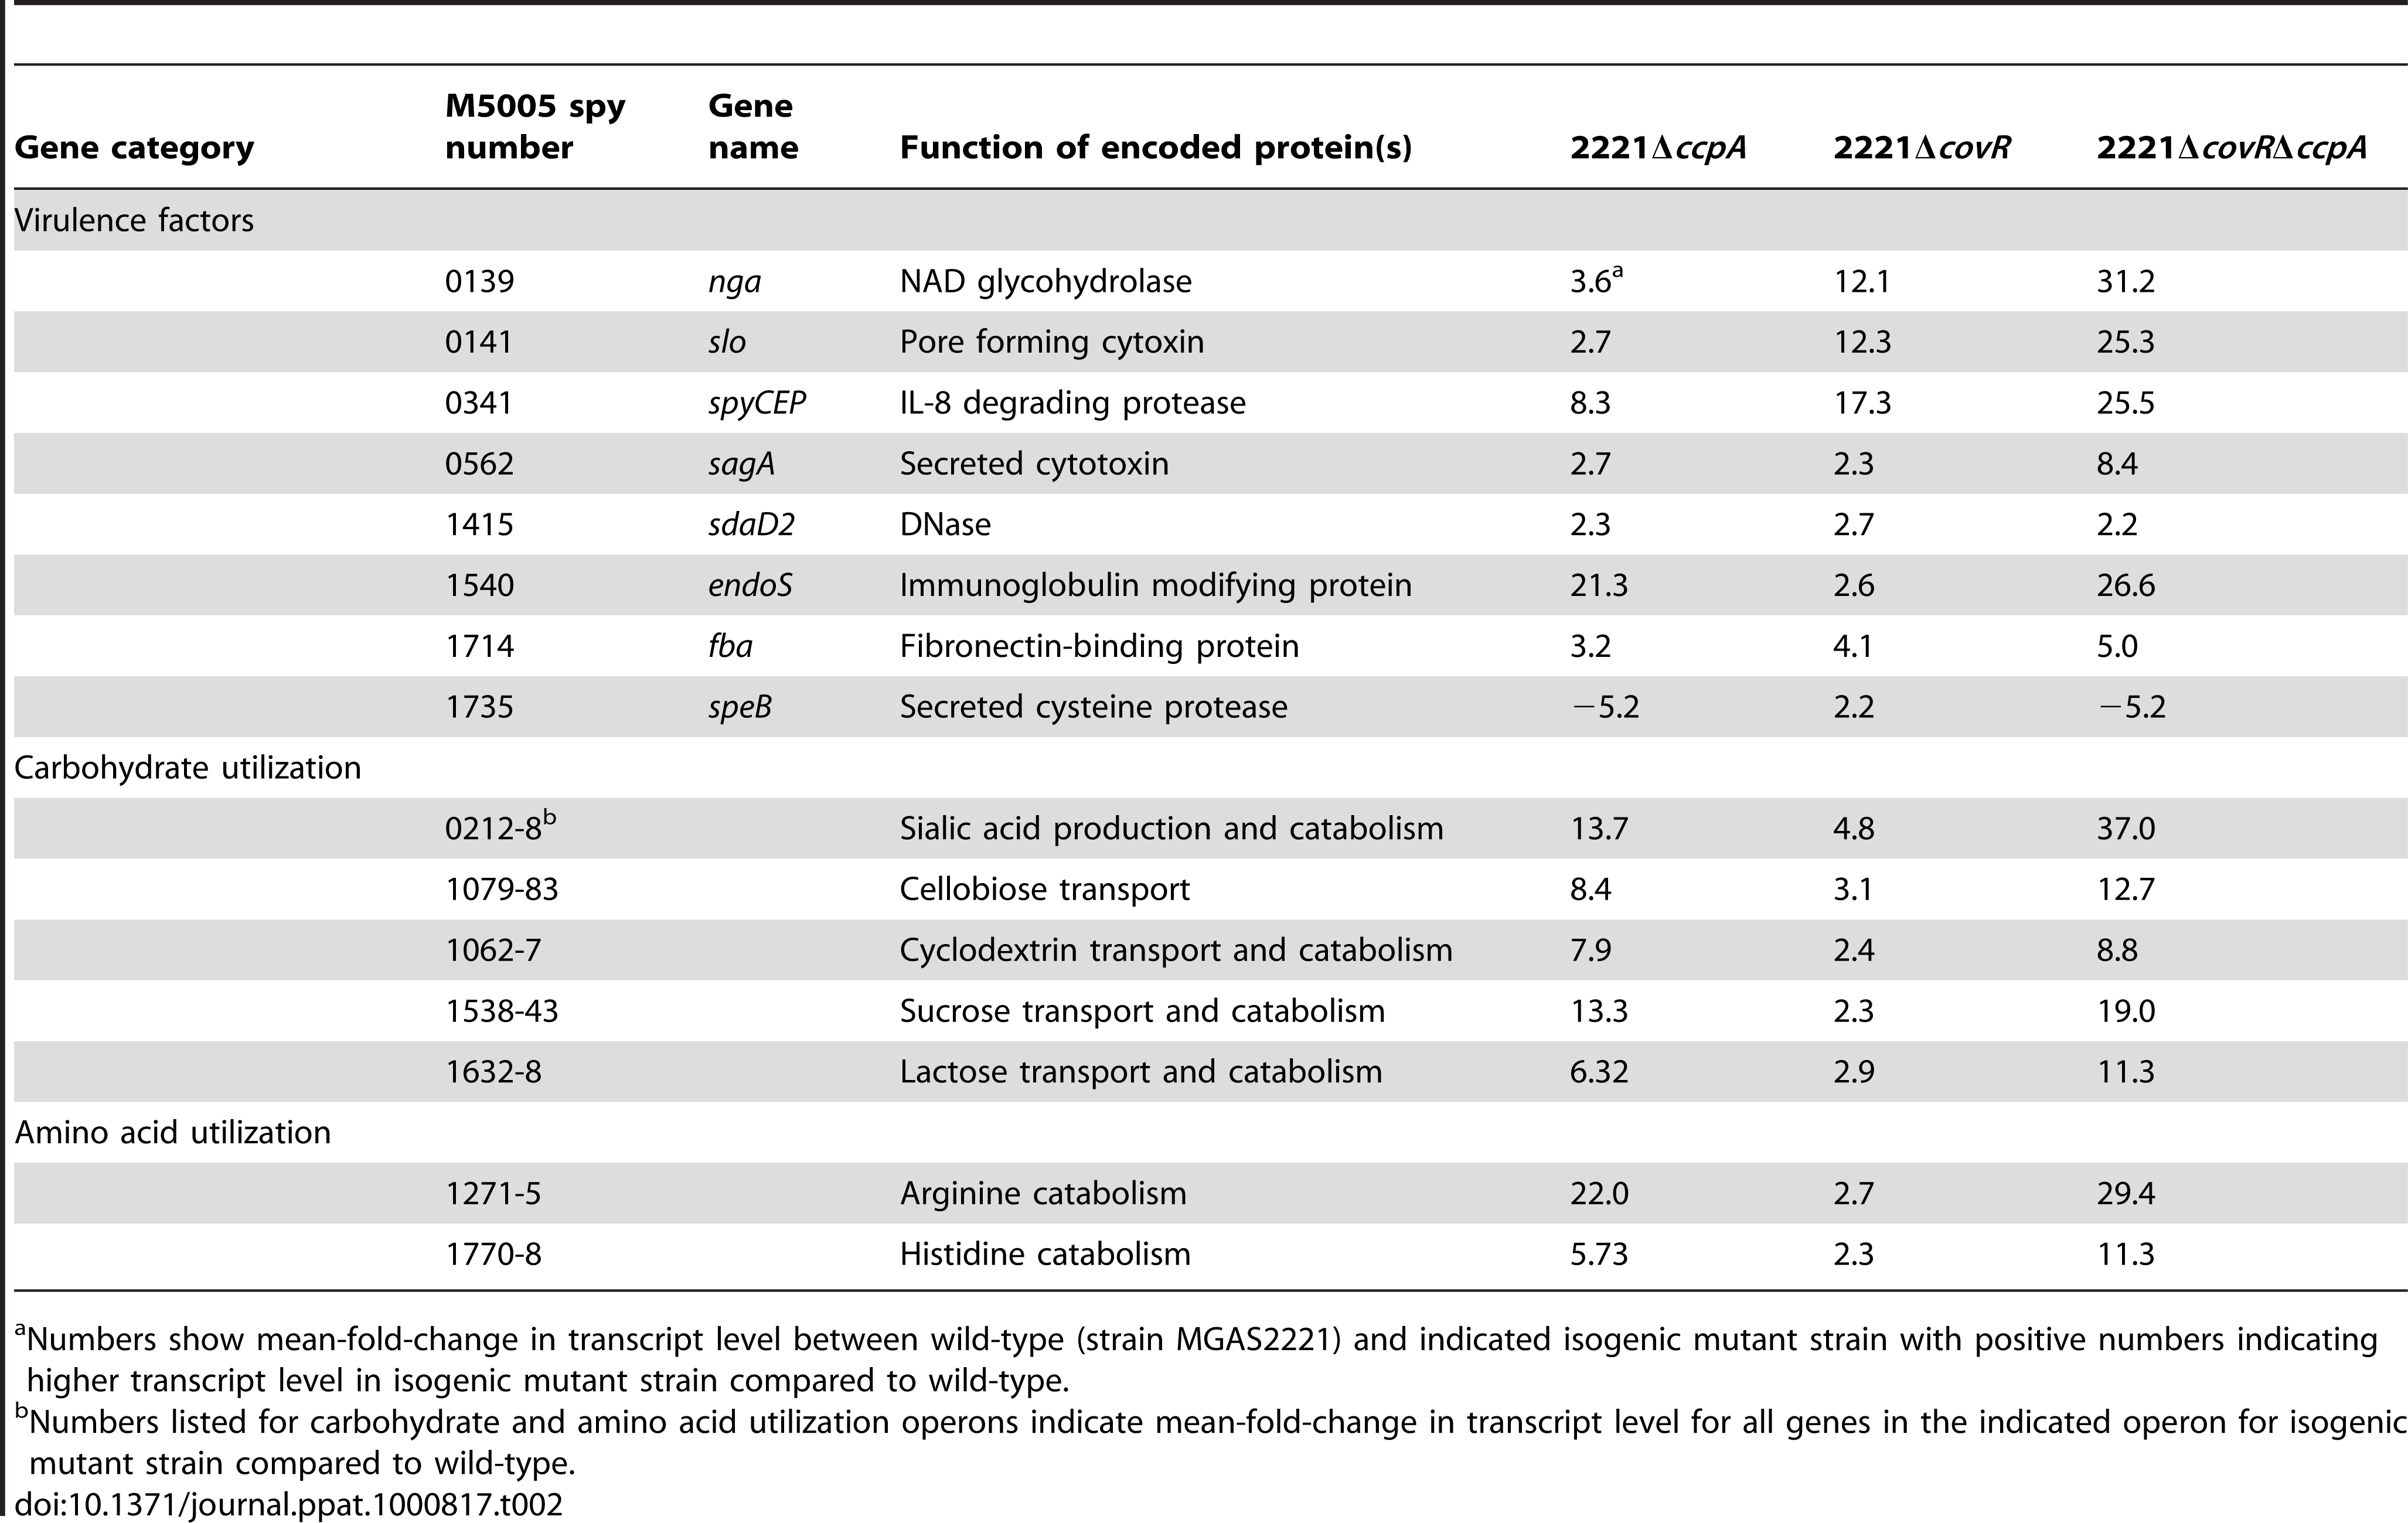 Selected genes/operons co-regulated by CcpA and CovR under laboratory conditions.